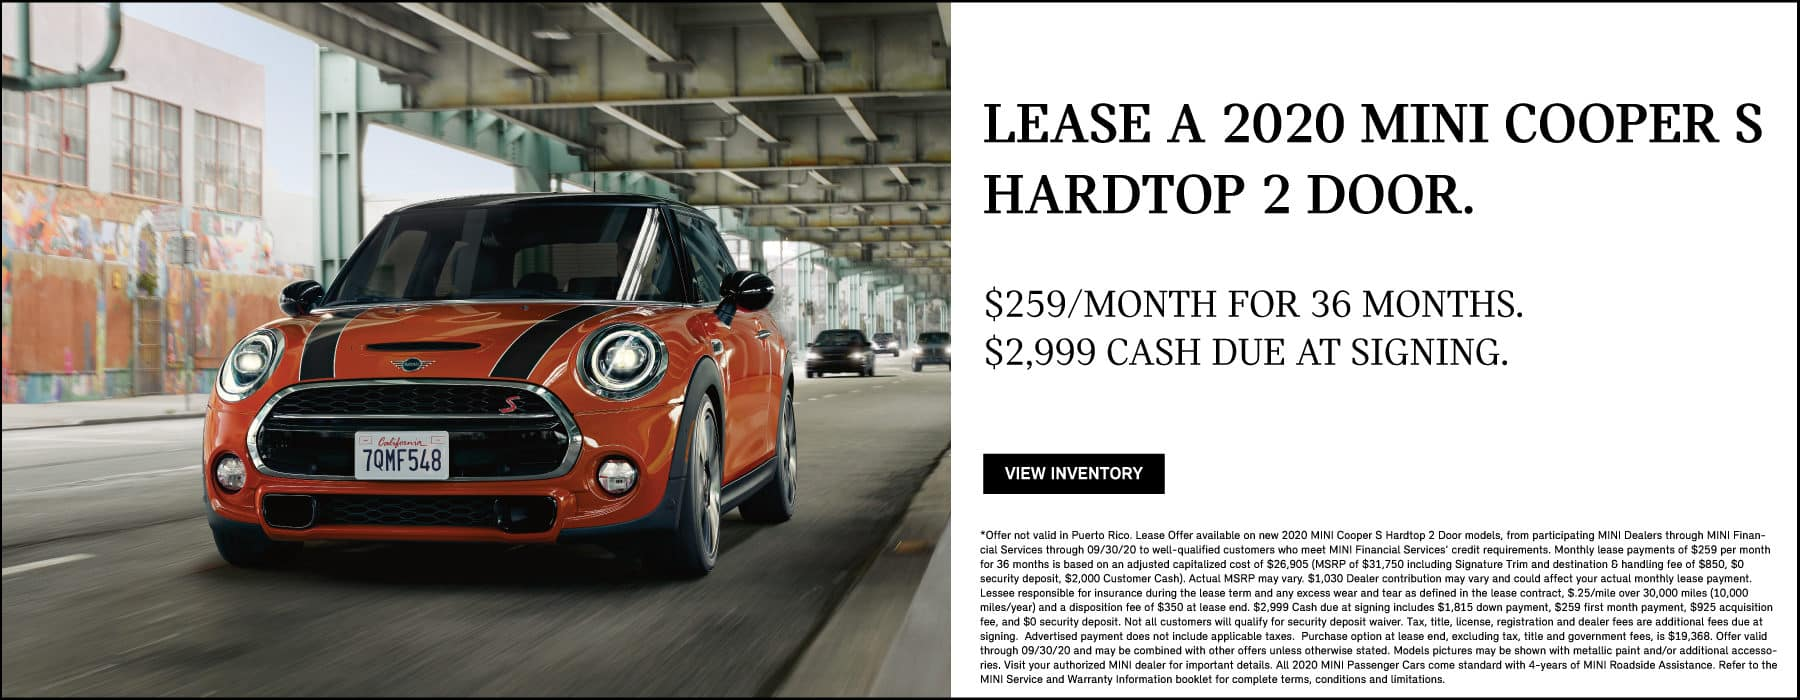 LEASE A 2020 MINI COOPER S HARDTOP 2 DOOR FOR $259 A MONTH FOR 36 MONTHS, $2,999 CASH DUE AT SIGNING. VIEW INVENTORY BUTTON. SEE DEALER FOR COMPLETE DETAILS.